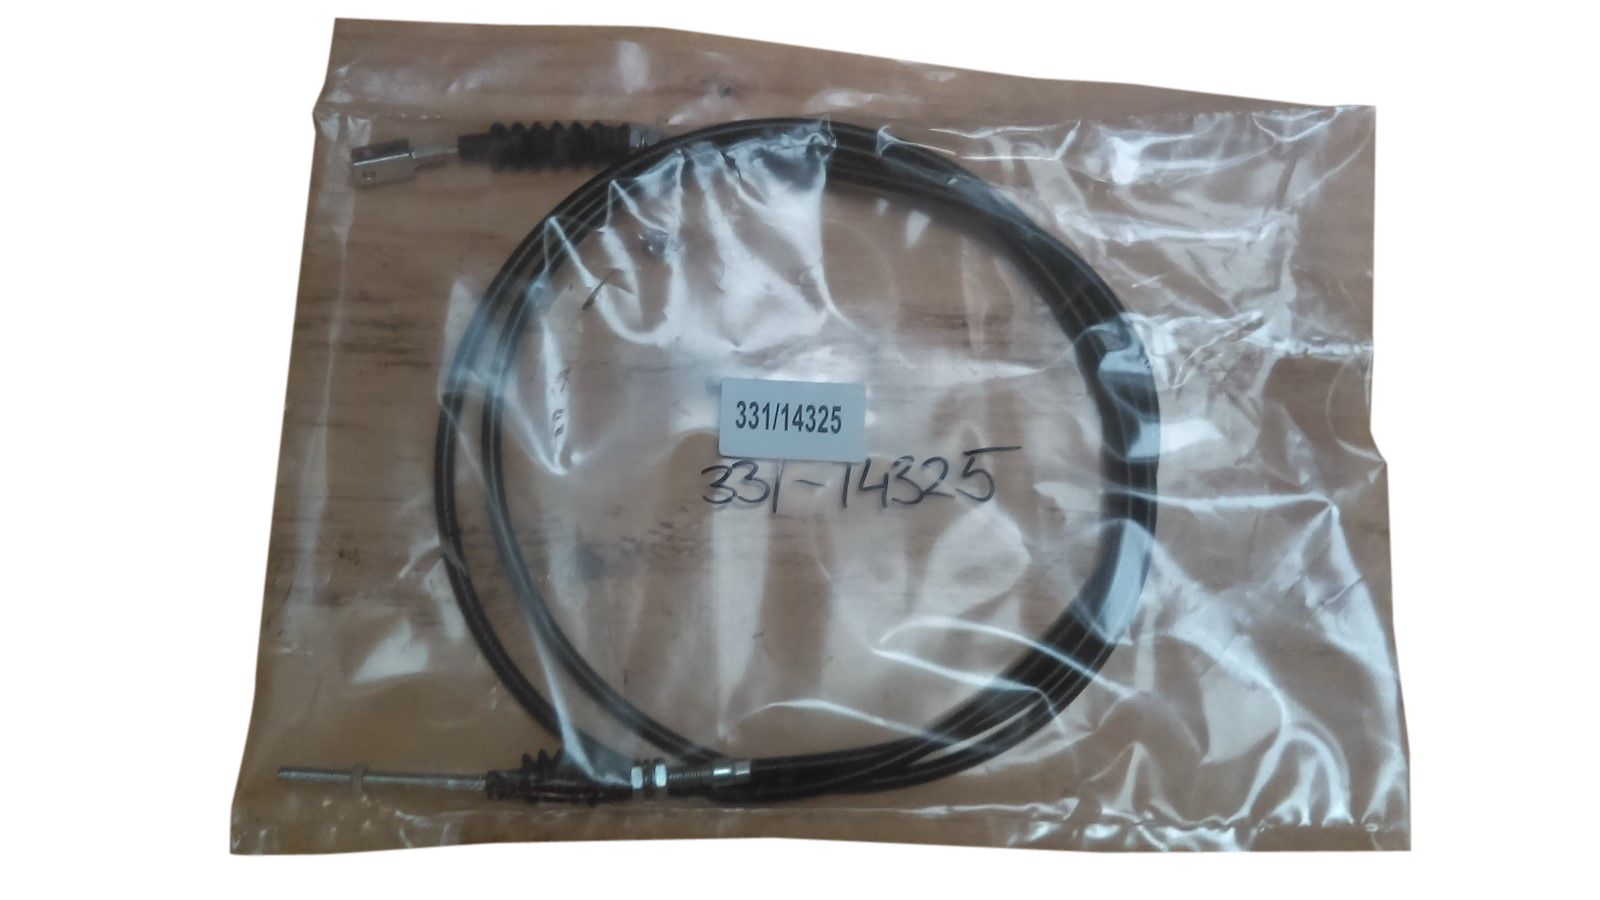 JCB PARTS THROTTLE CABLE 331/14325